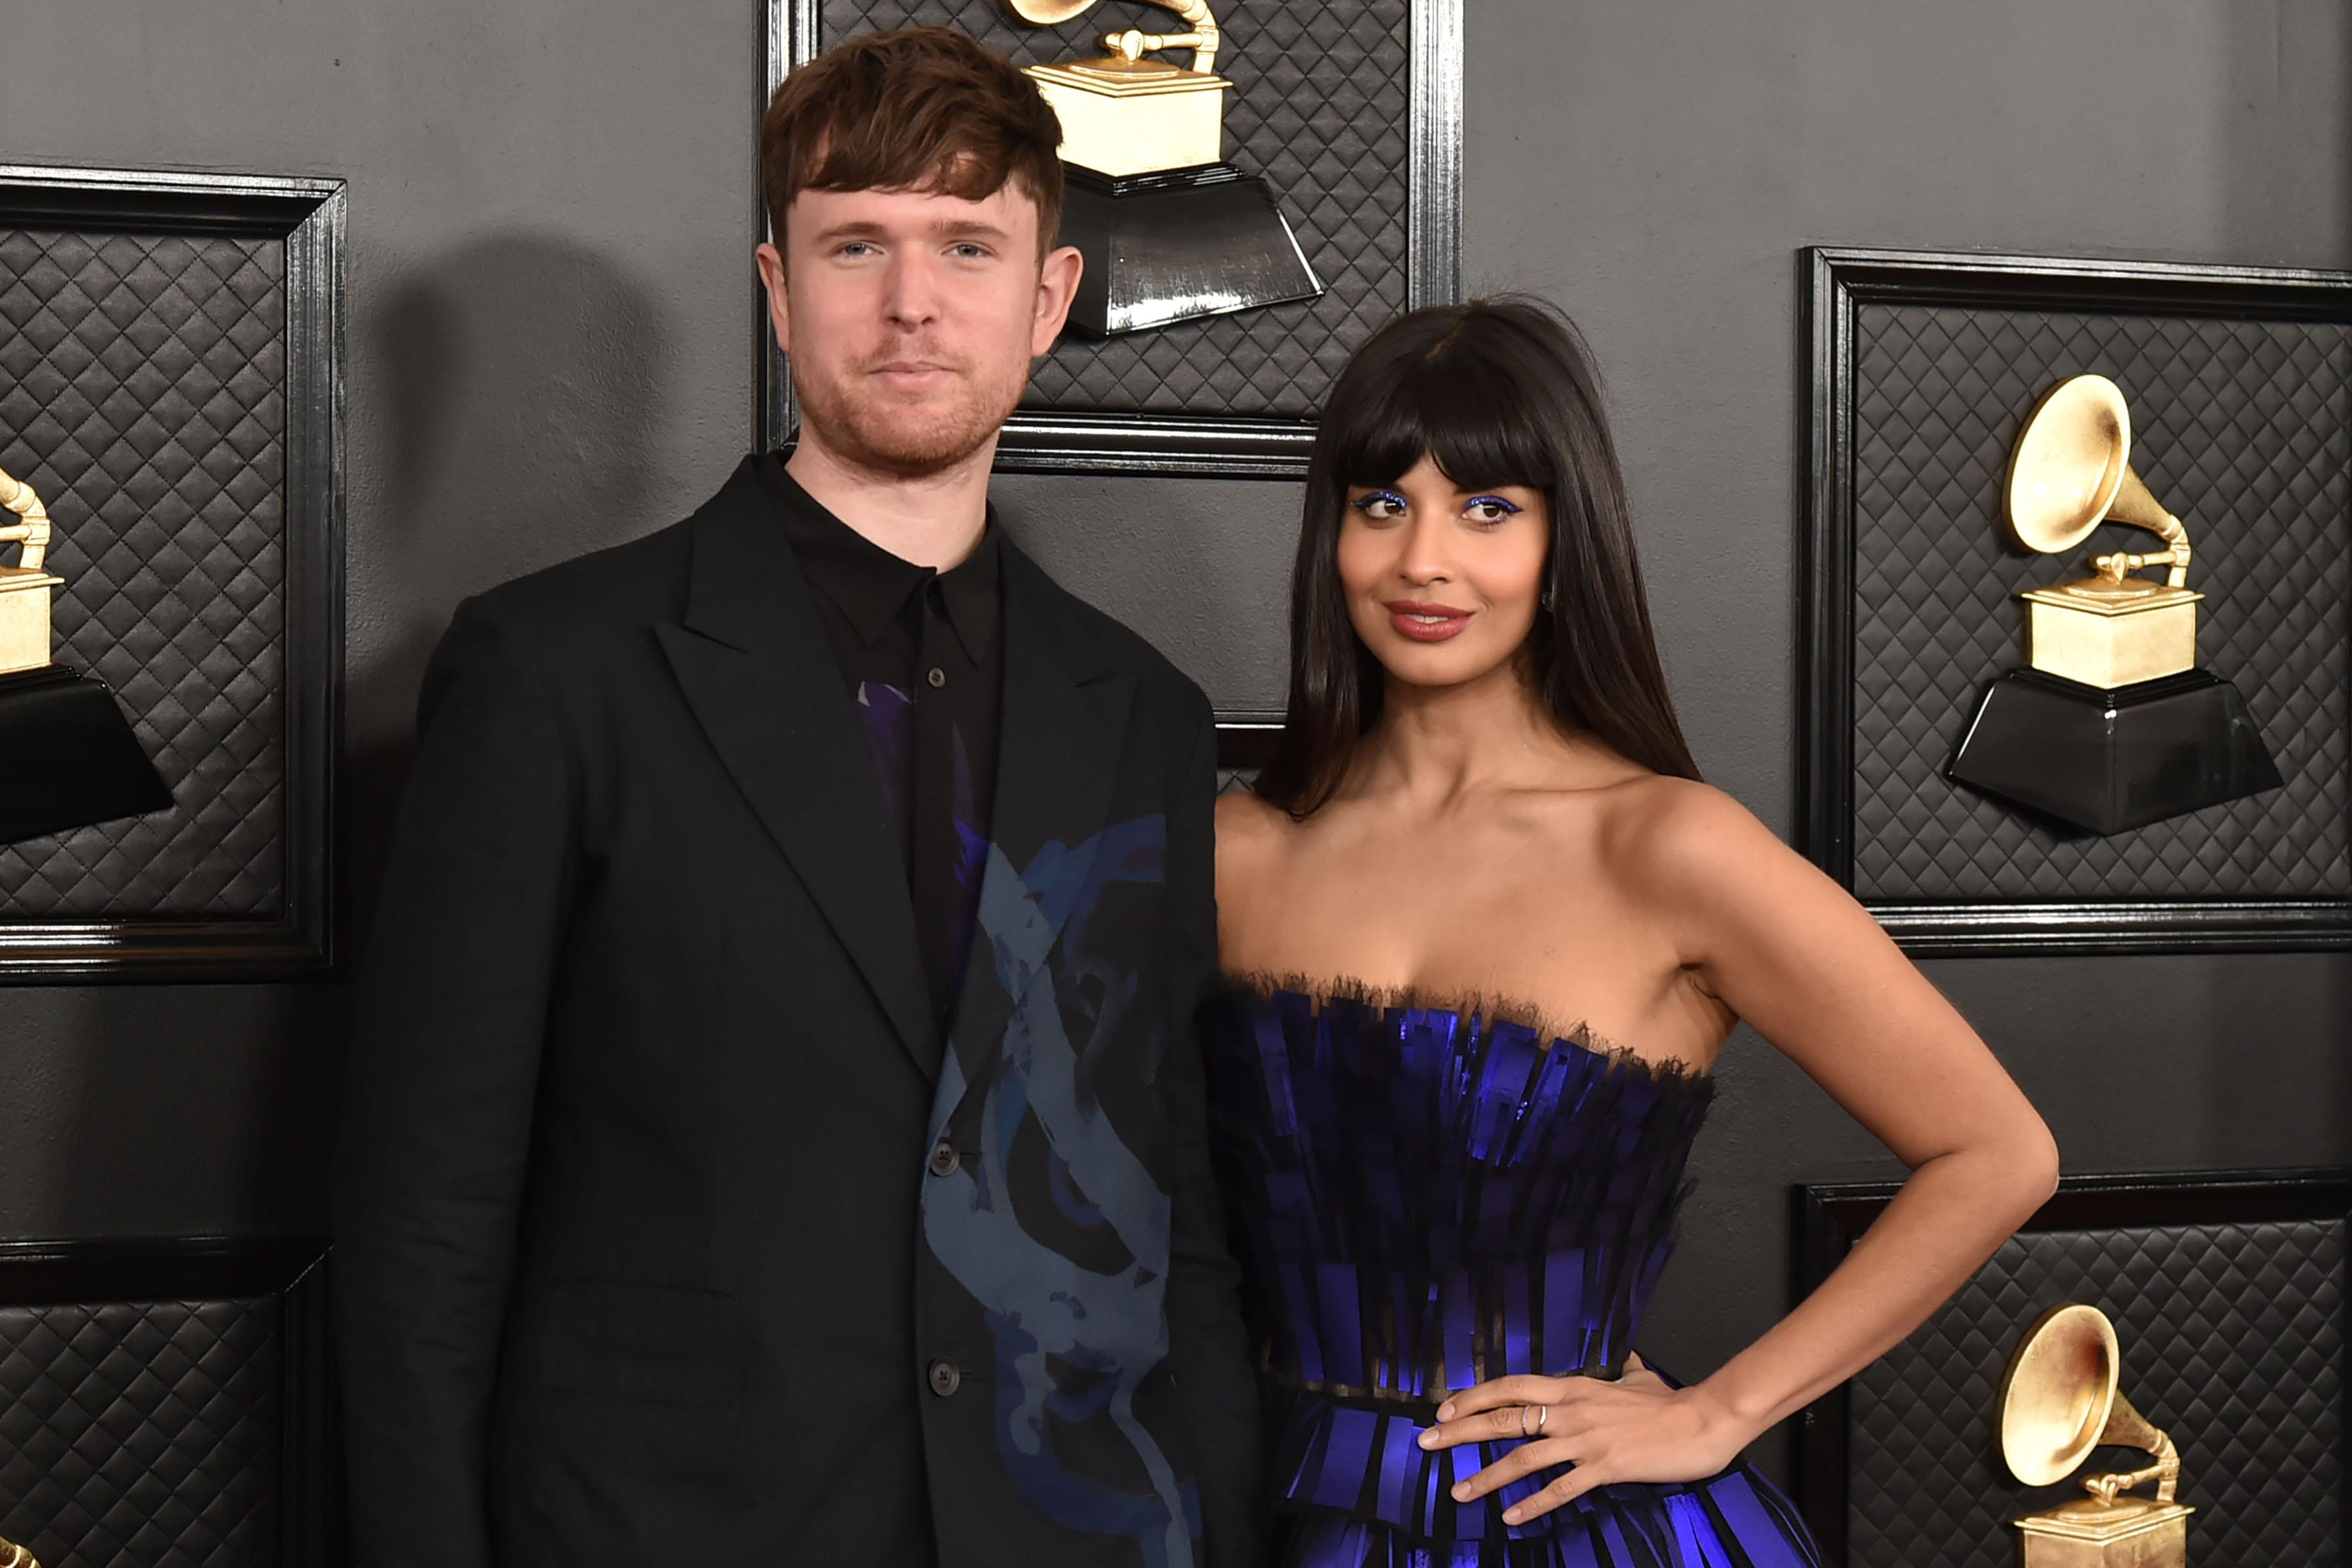 Jameela Jamil's musician boyfriend James Blake defends her from being 'dog piled on everyday'